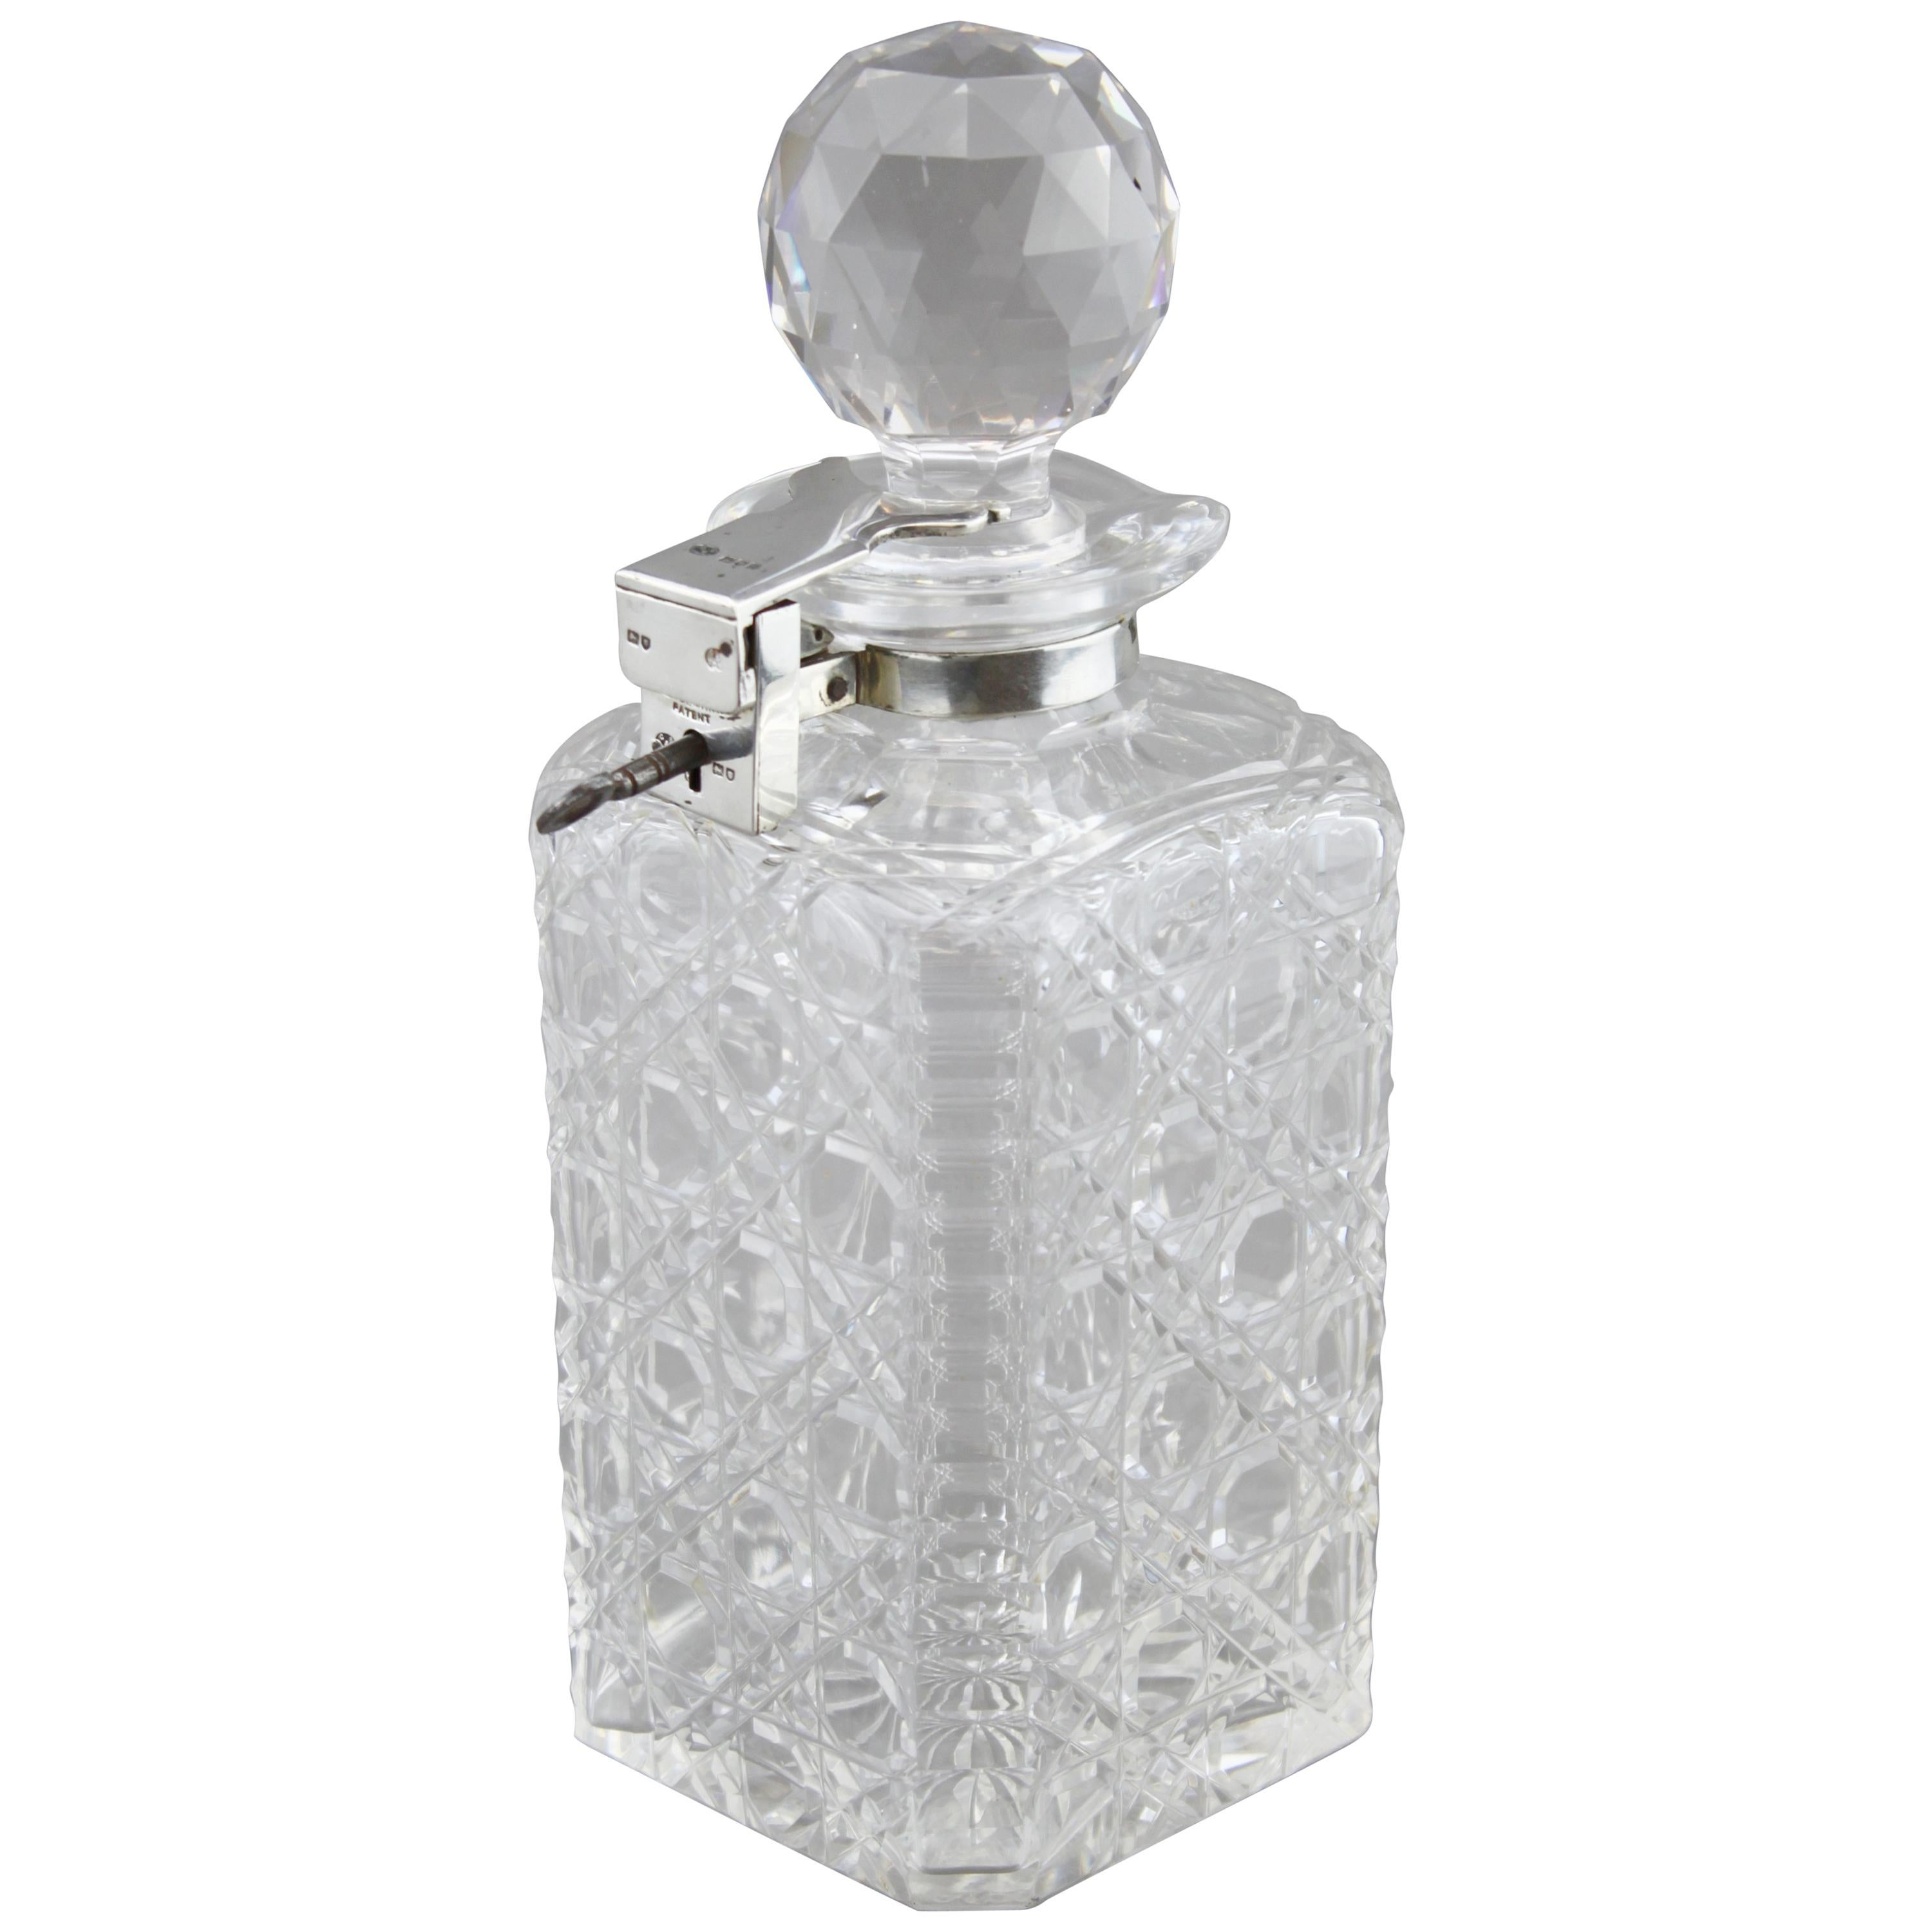 Sterling Silver and Crystal Glass Whiskey Bottle, London, 1927